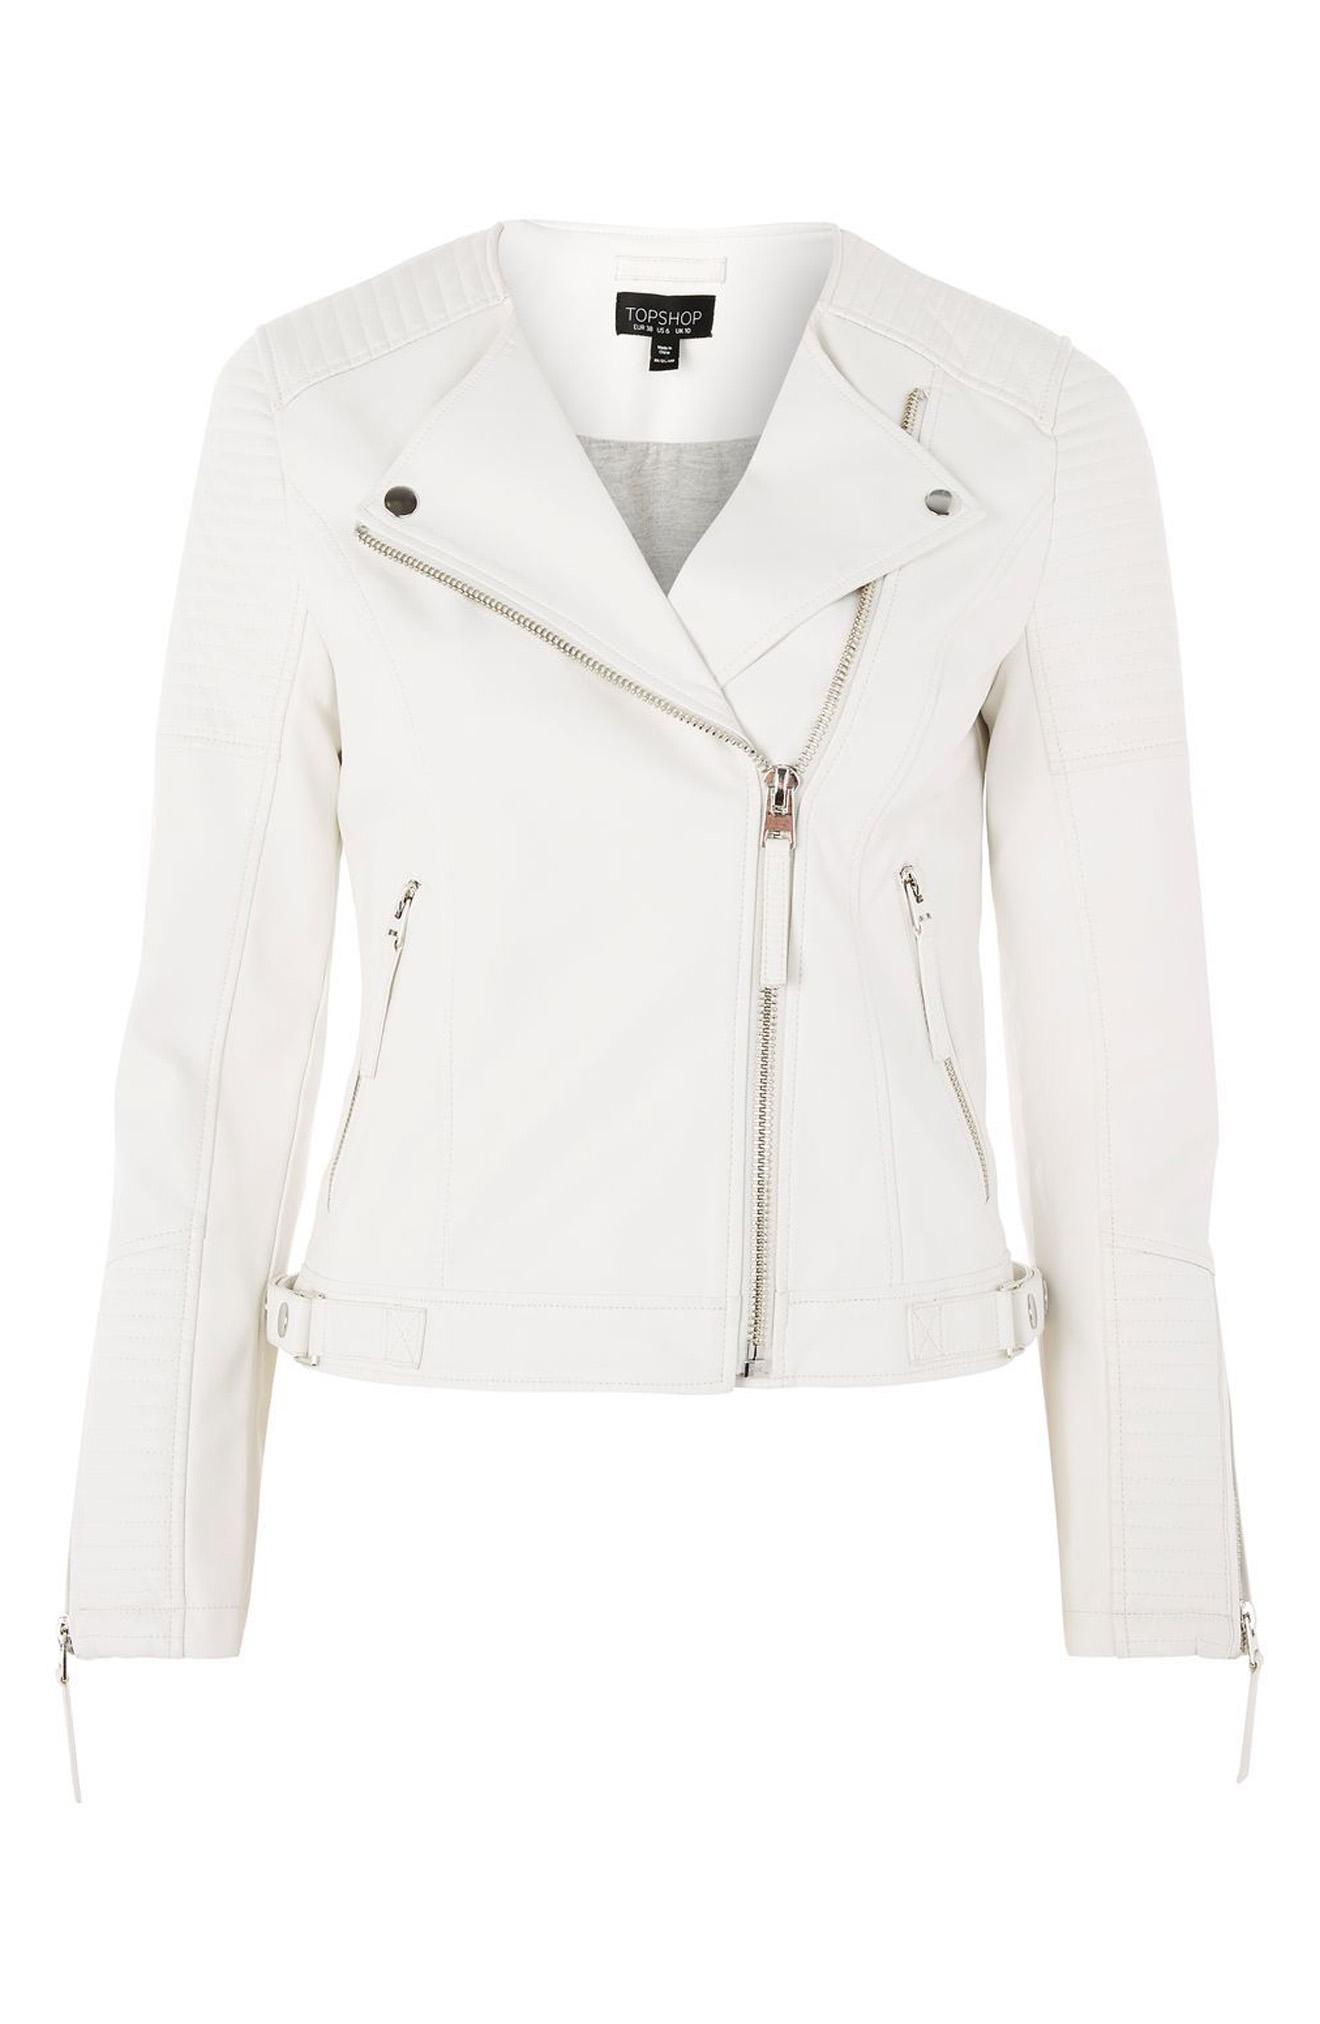 Topshop Luna Faux Leather Biker Jacket from Nordstrom // Price: $46.99-$95 // (Photo courtesy: Nordstrom/ Nordstrom.com)<p></p>